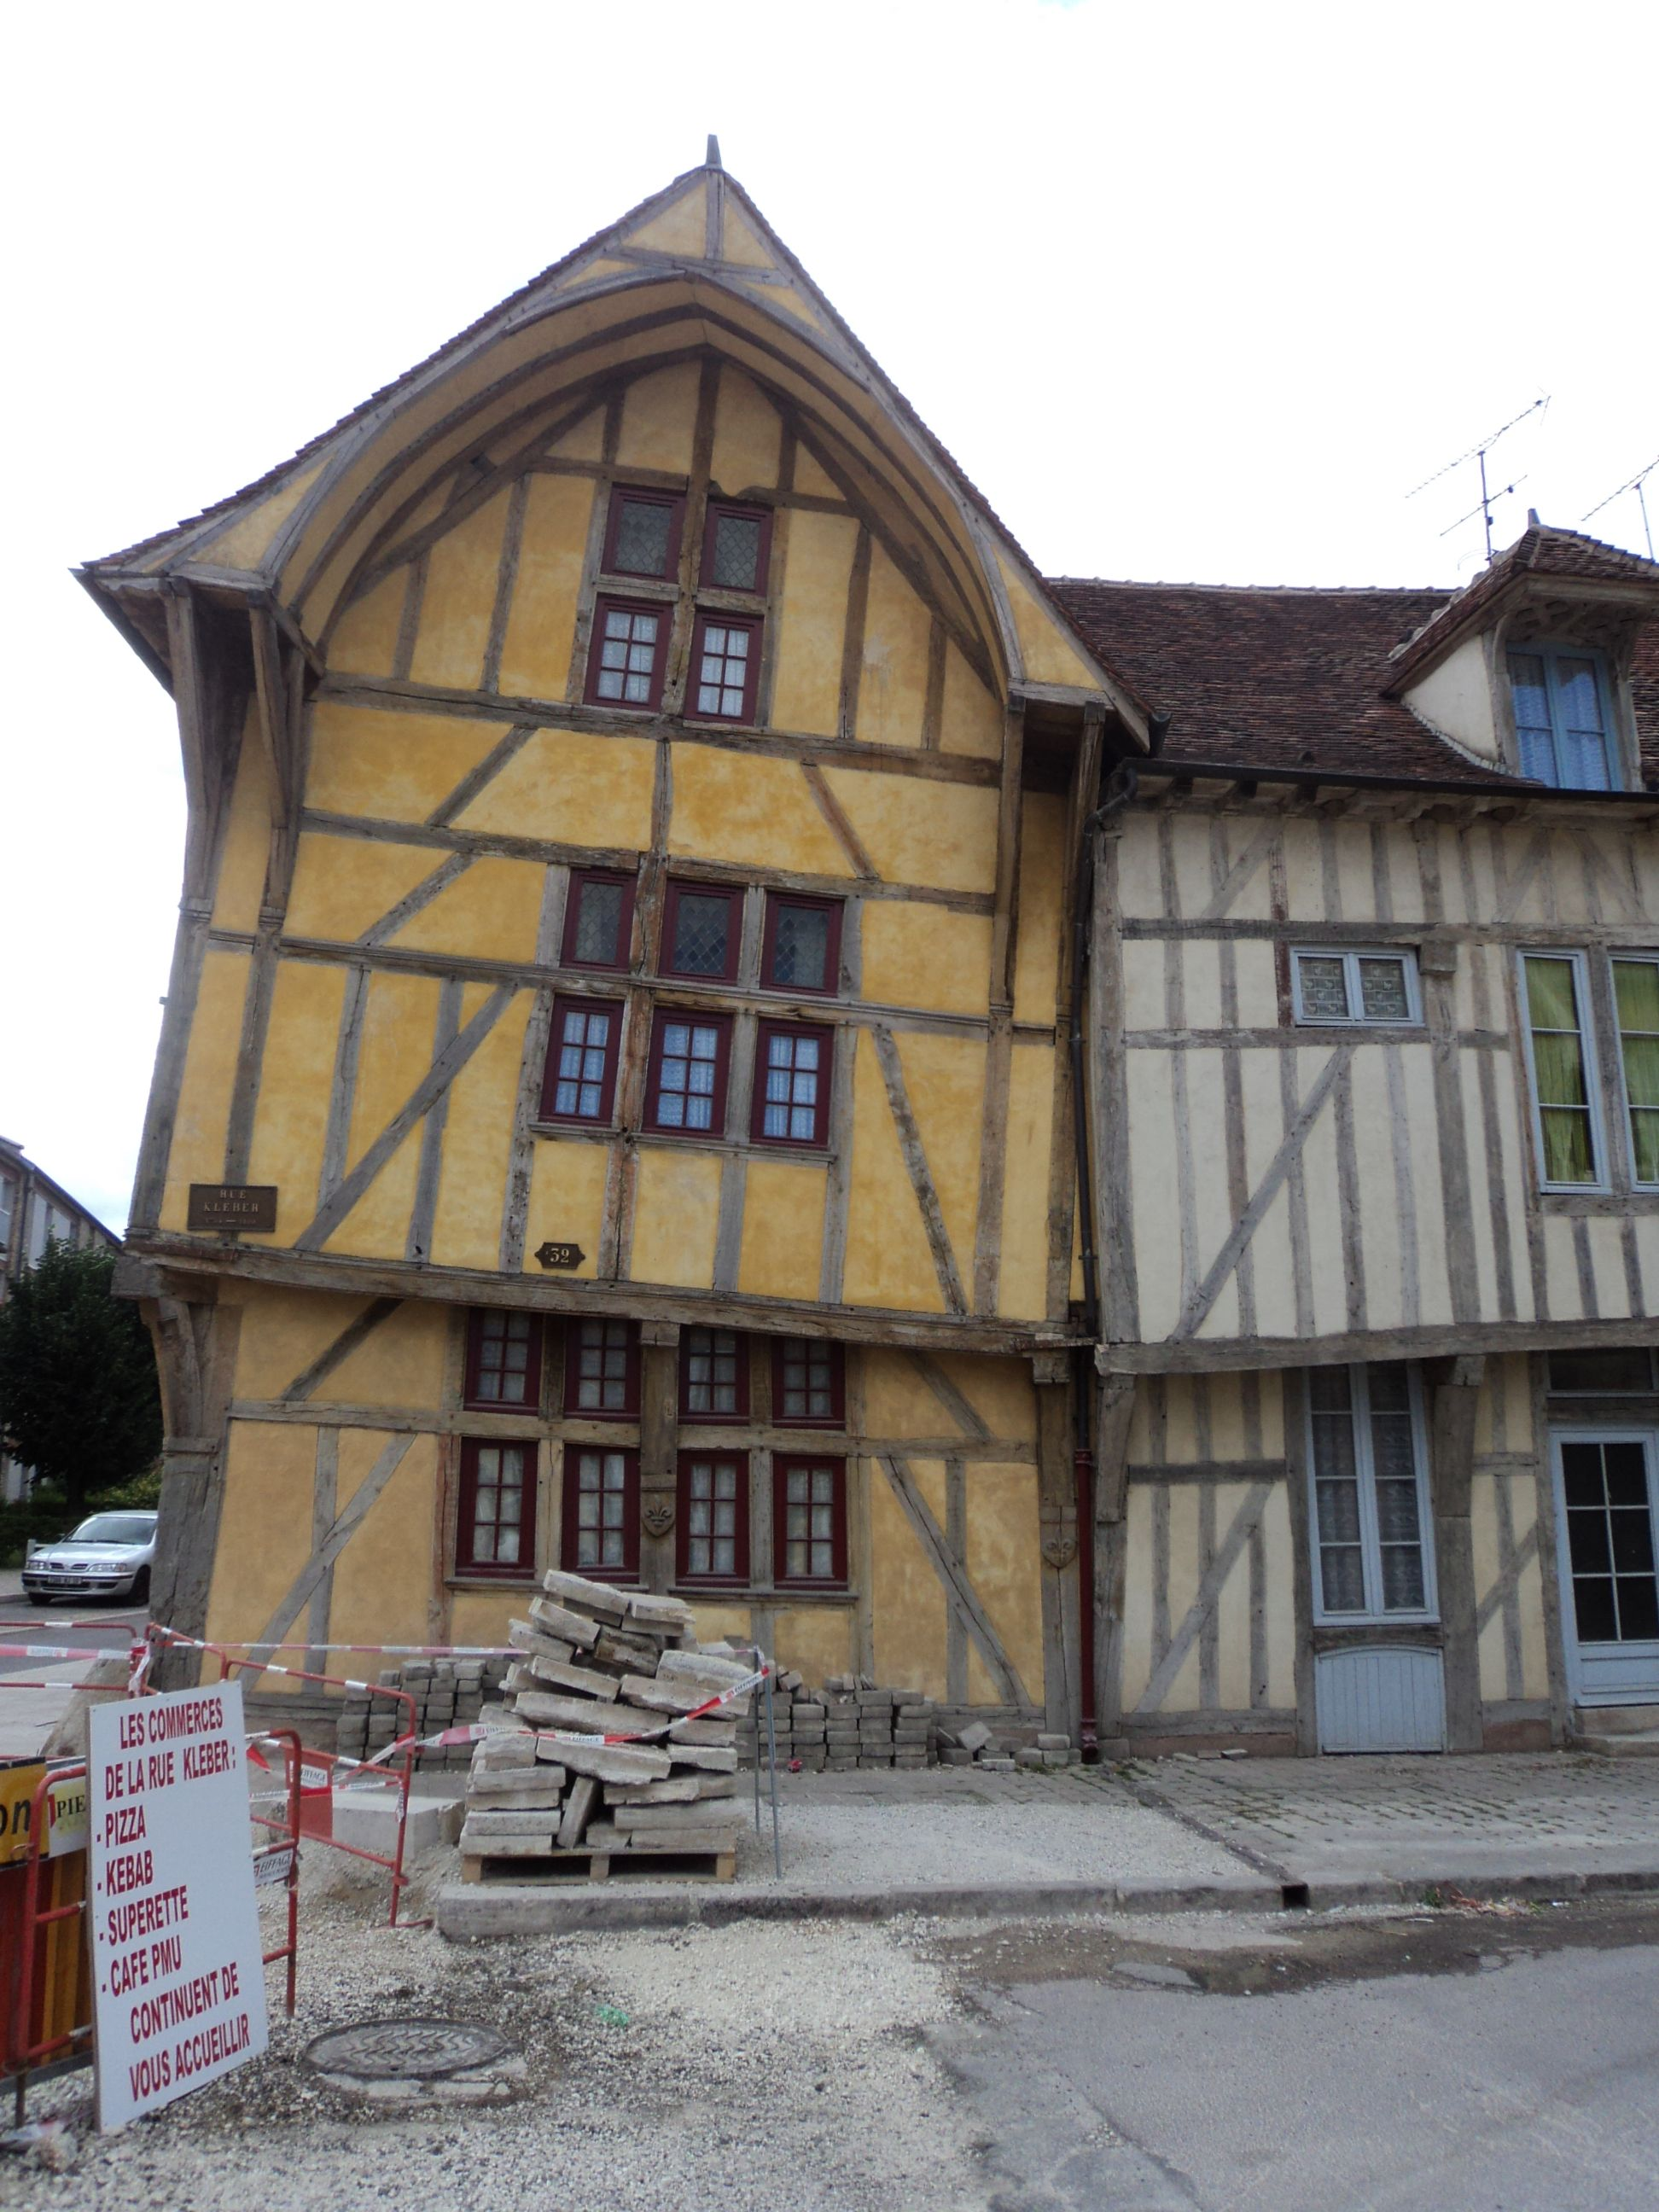 16th Century French Home - 022c3c5a0de2519a1edf4737ee8bddef_Wonderful 16th Century French Home - 022c3c5a0de2519a1edf4737ee8bddef  Picture_20861.jpg